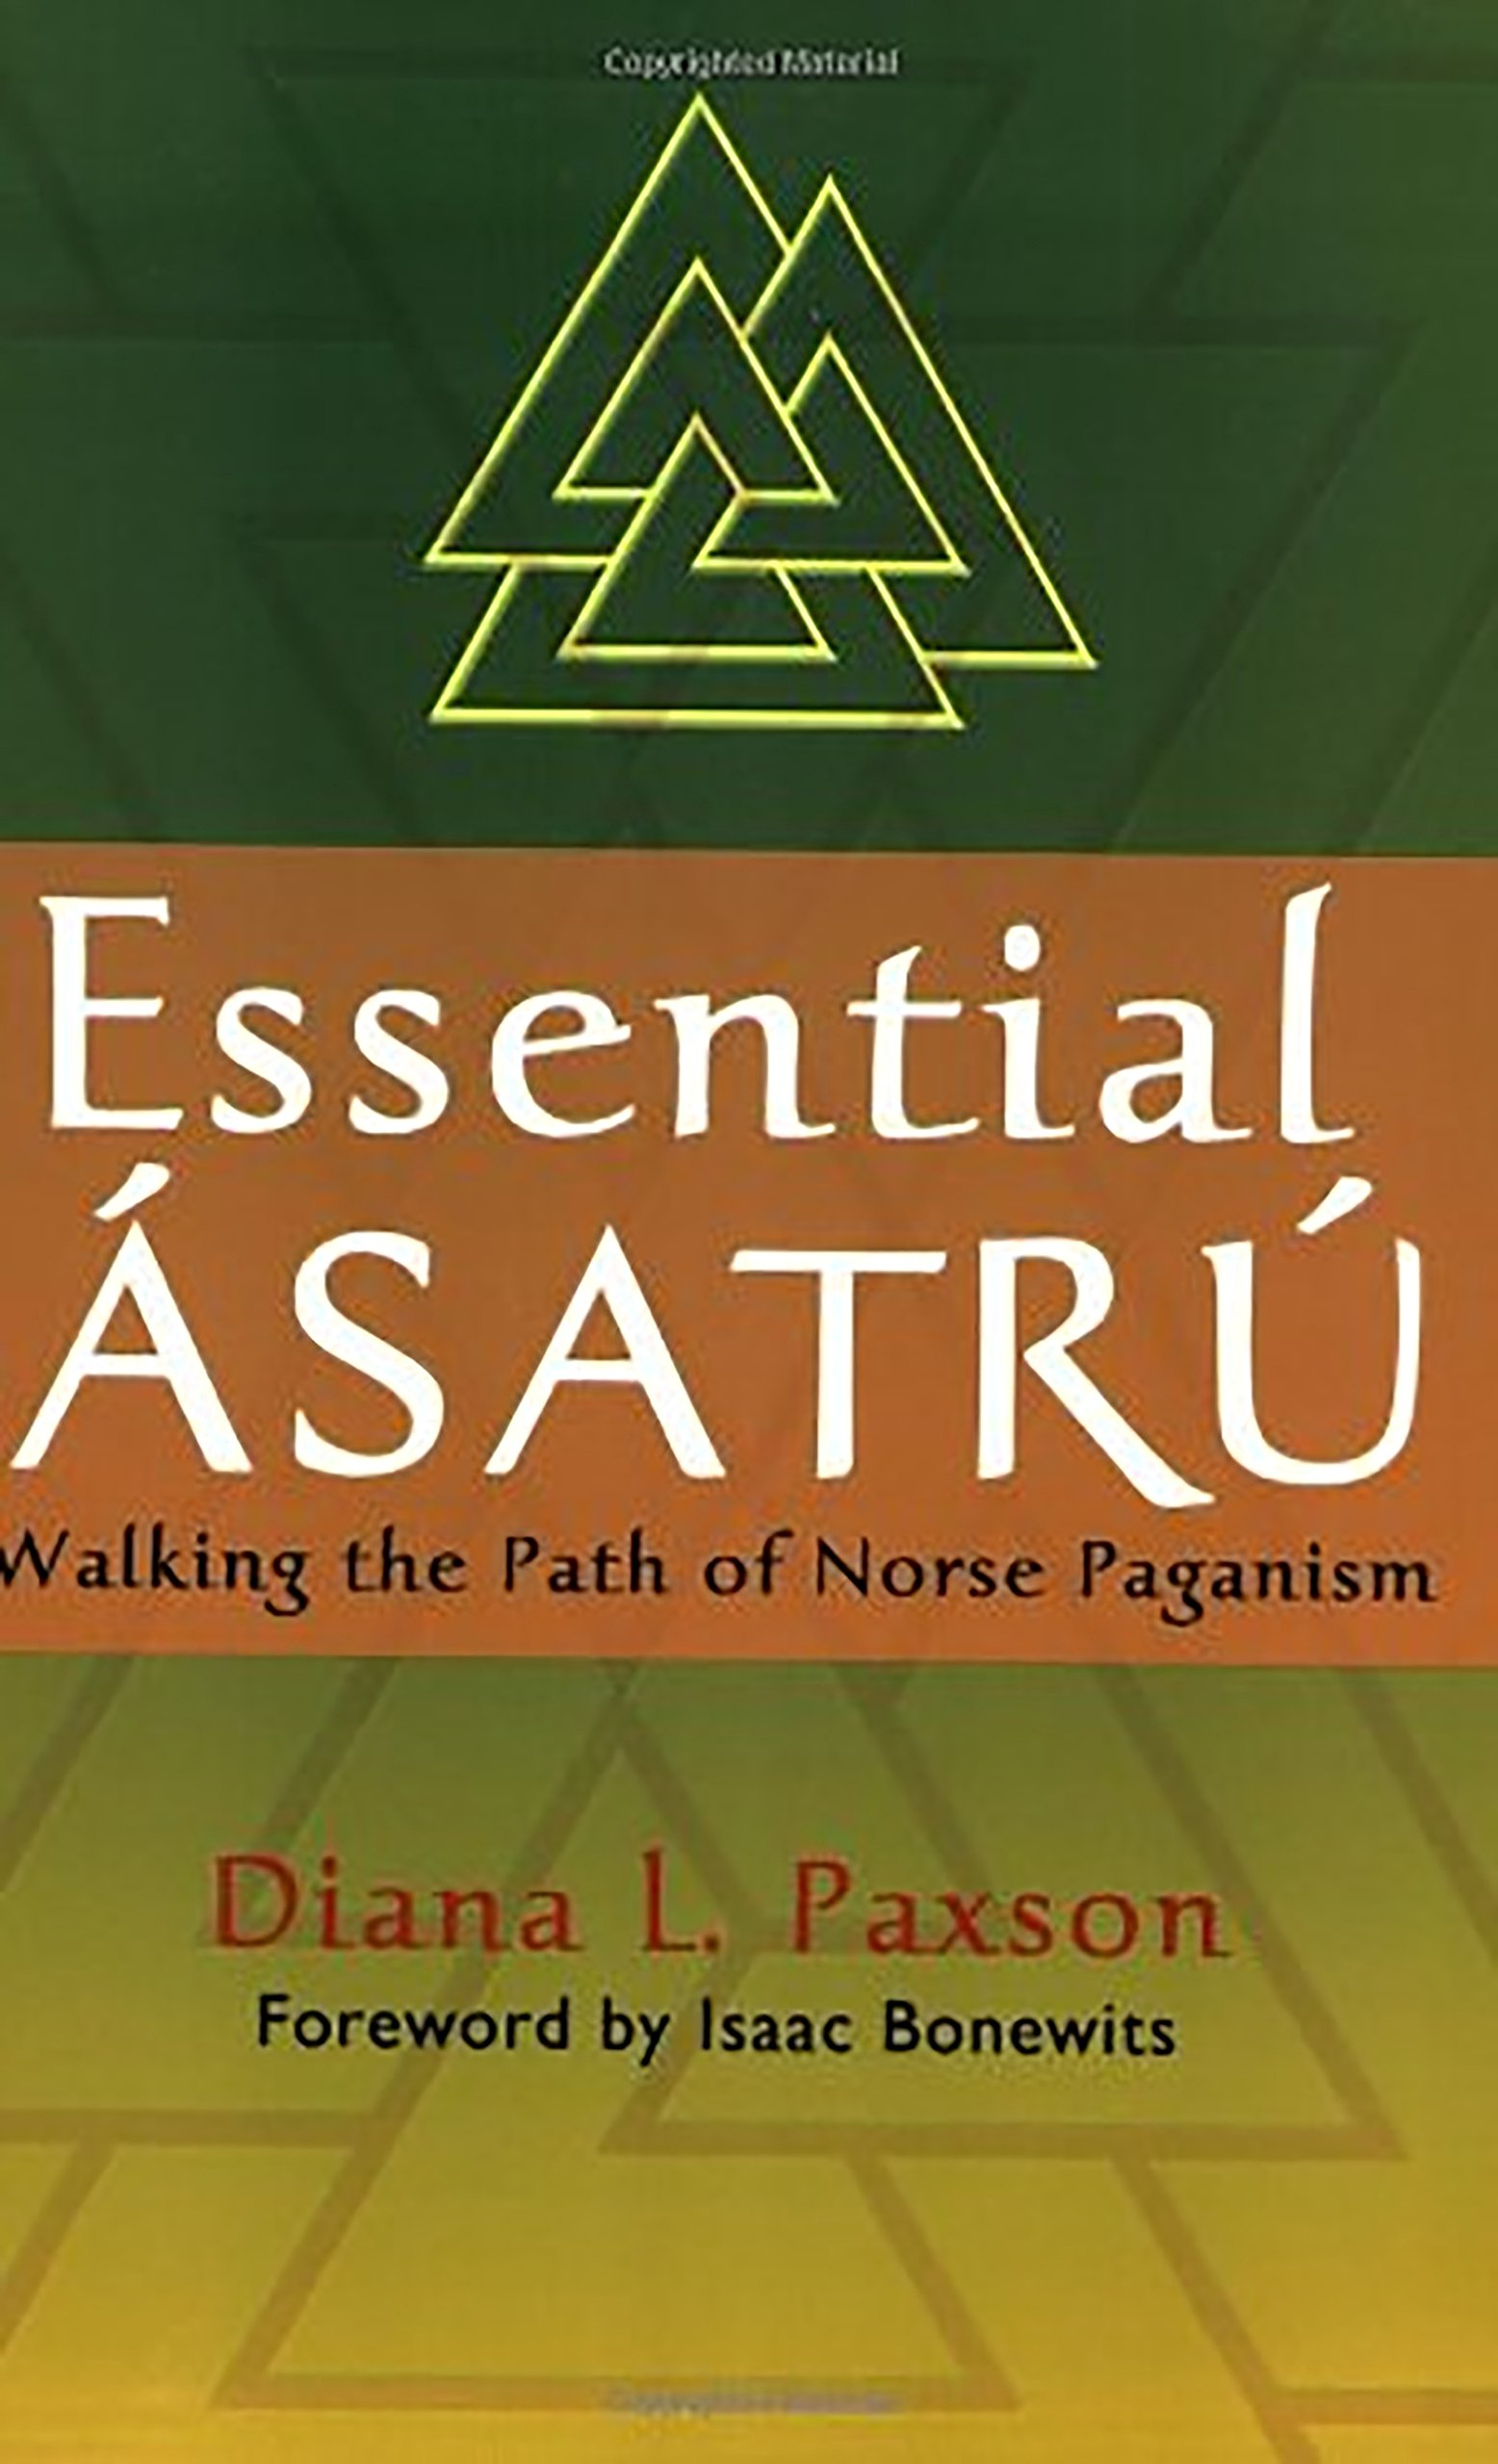 Essential asatru walking the path of norse paganism diana l essential asatru walking the path of norse paganism diana l paxson isaac bonewits 9780806527086 amazon books fandeluxe Image collections